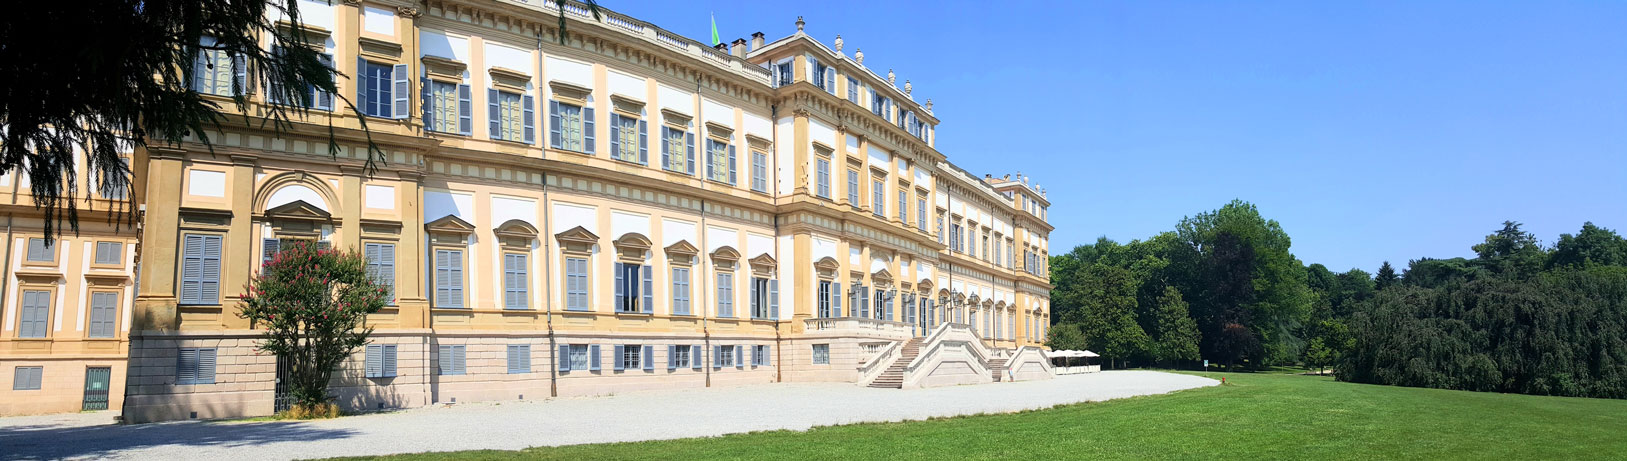 Things to do in Monza - Villa Reale